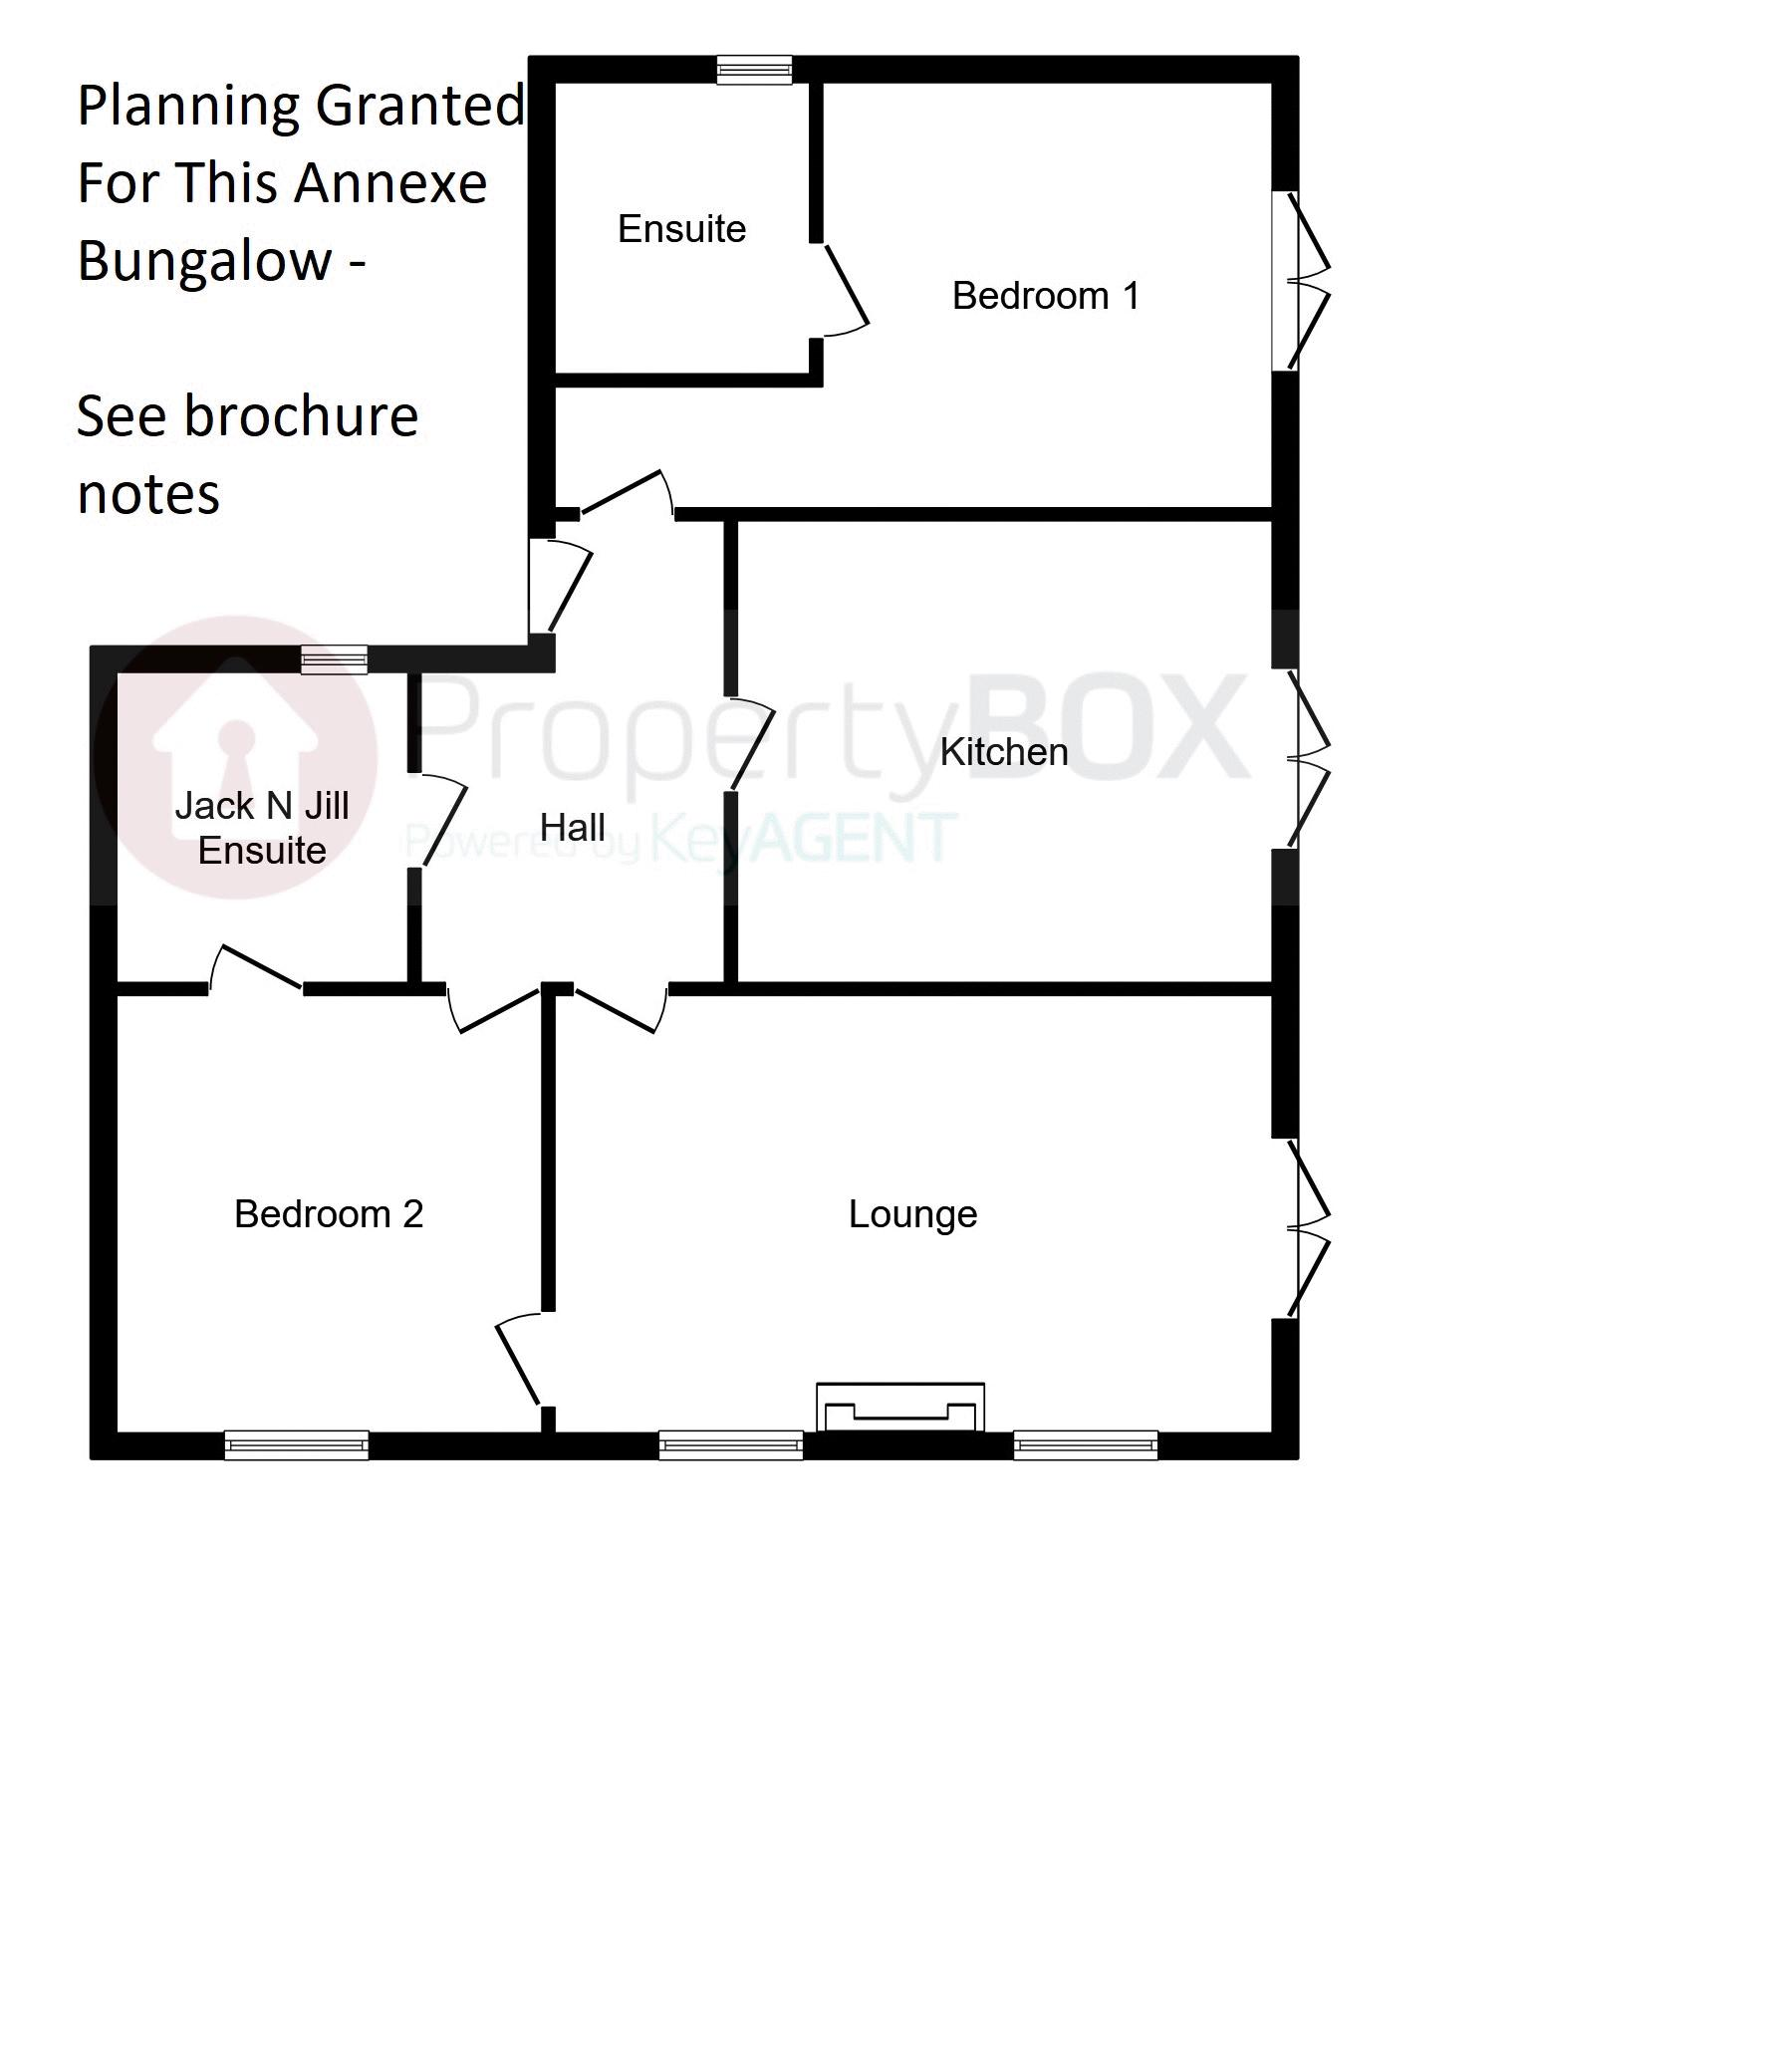 Consented Annexe